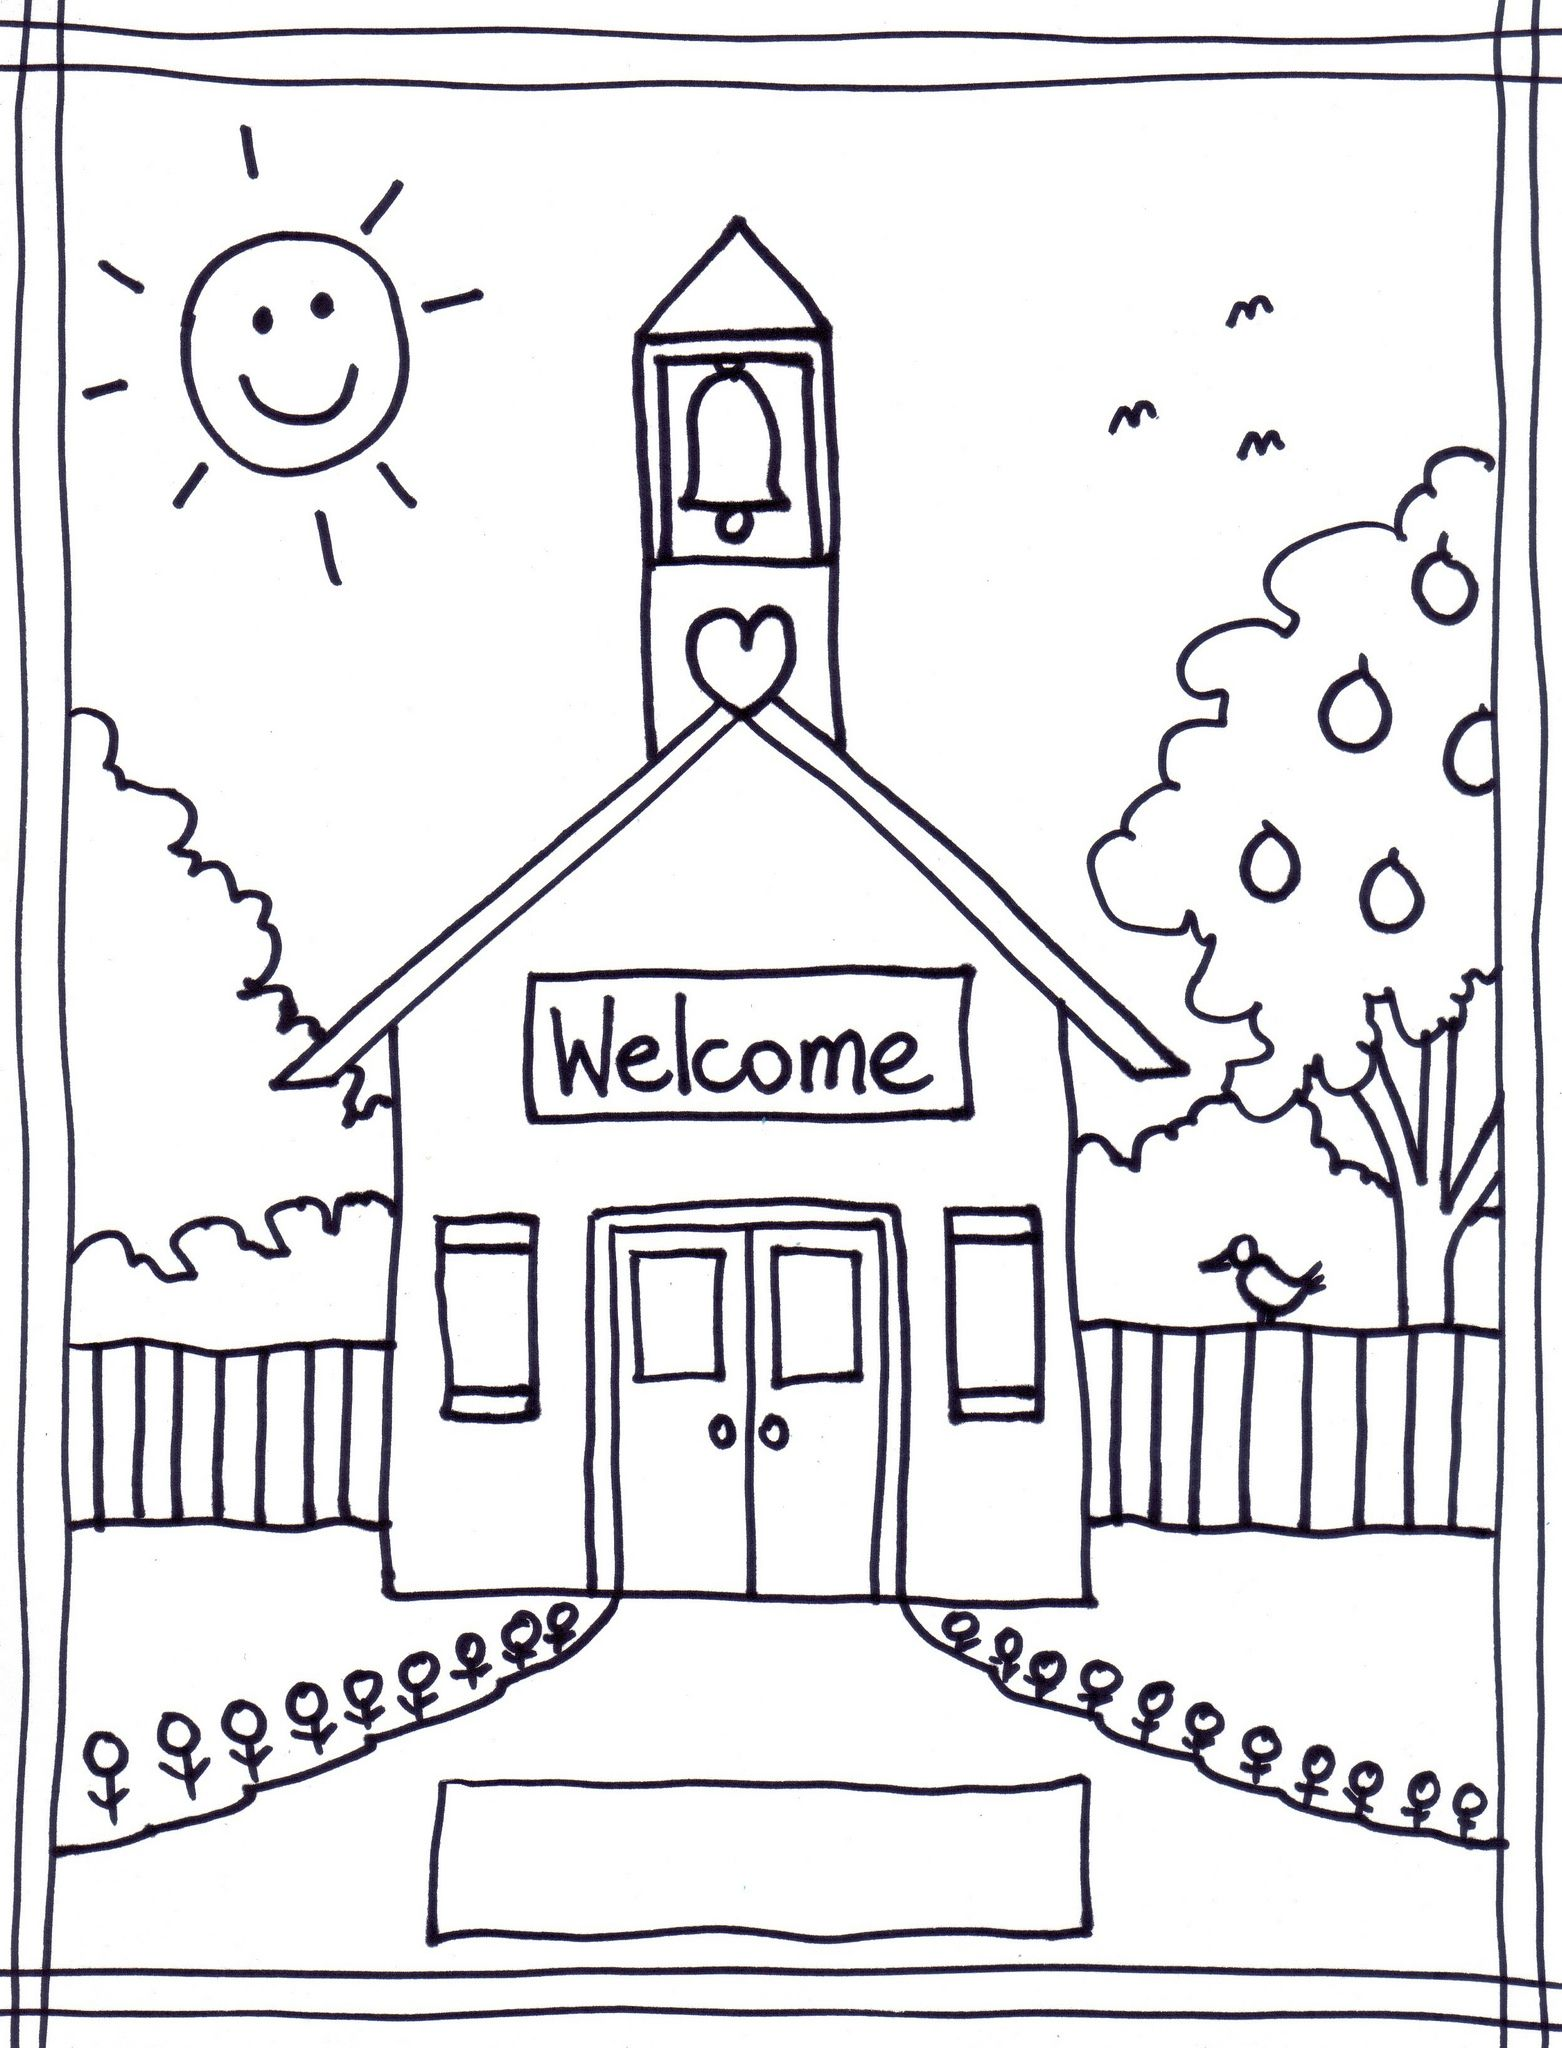 Back To School Coloring Pages Free Printables Image 22 Voteforverde Com Kindergarten Coloring Pages School Coloring Pages Kindergarten Colors